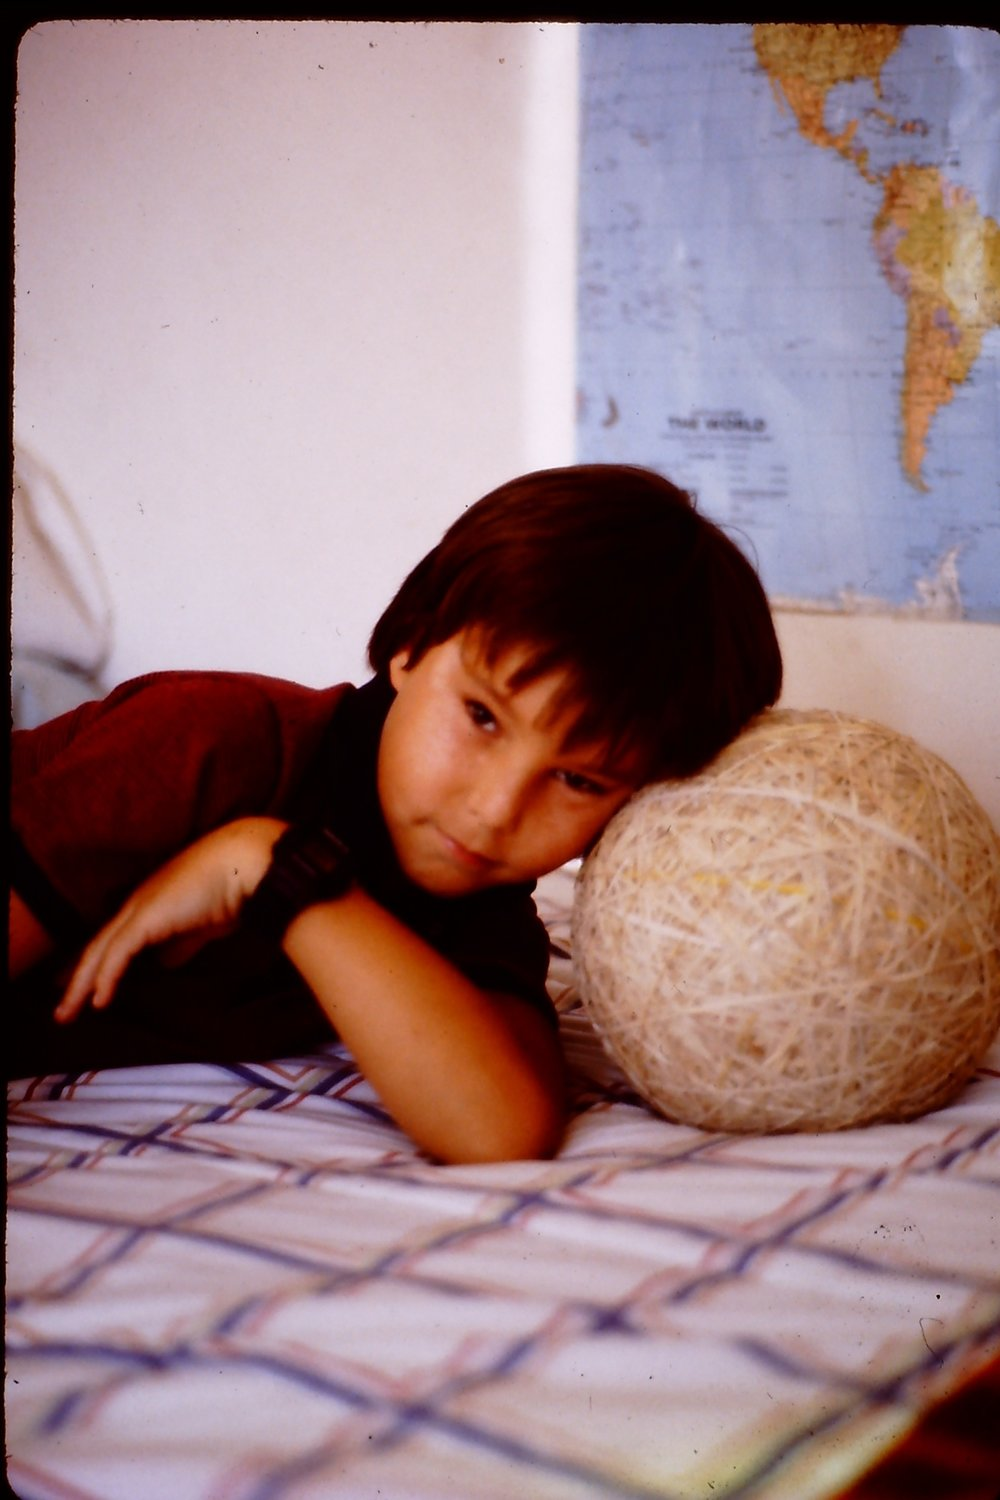 Me with the ball in 1985